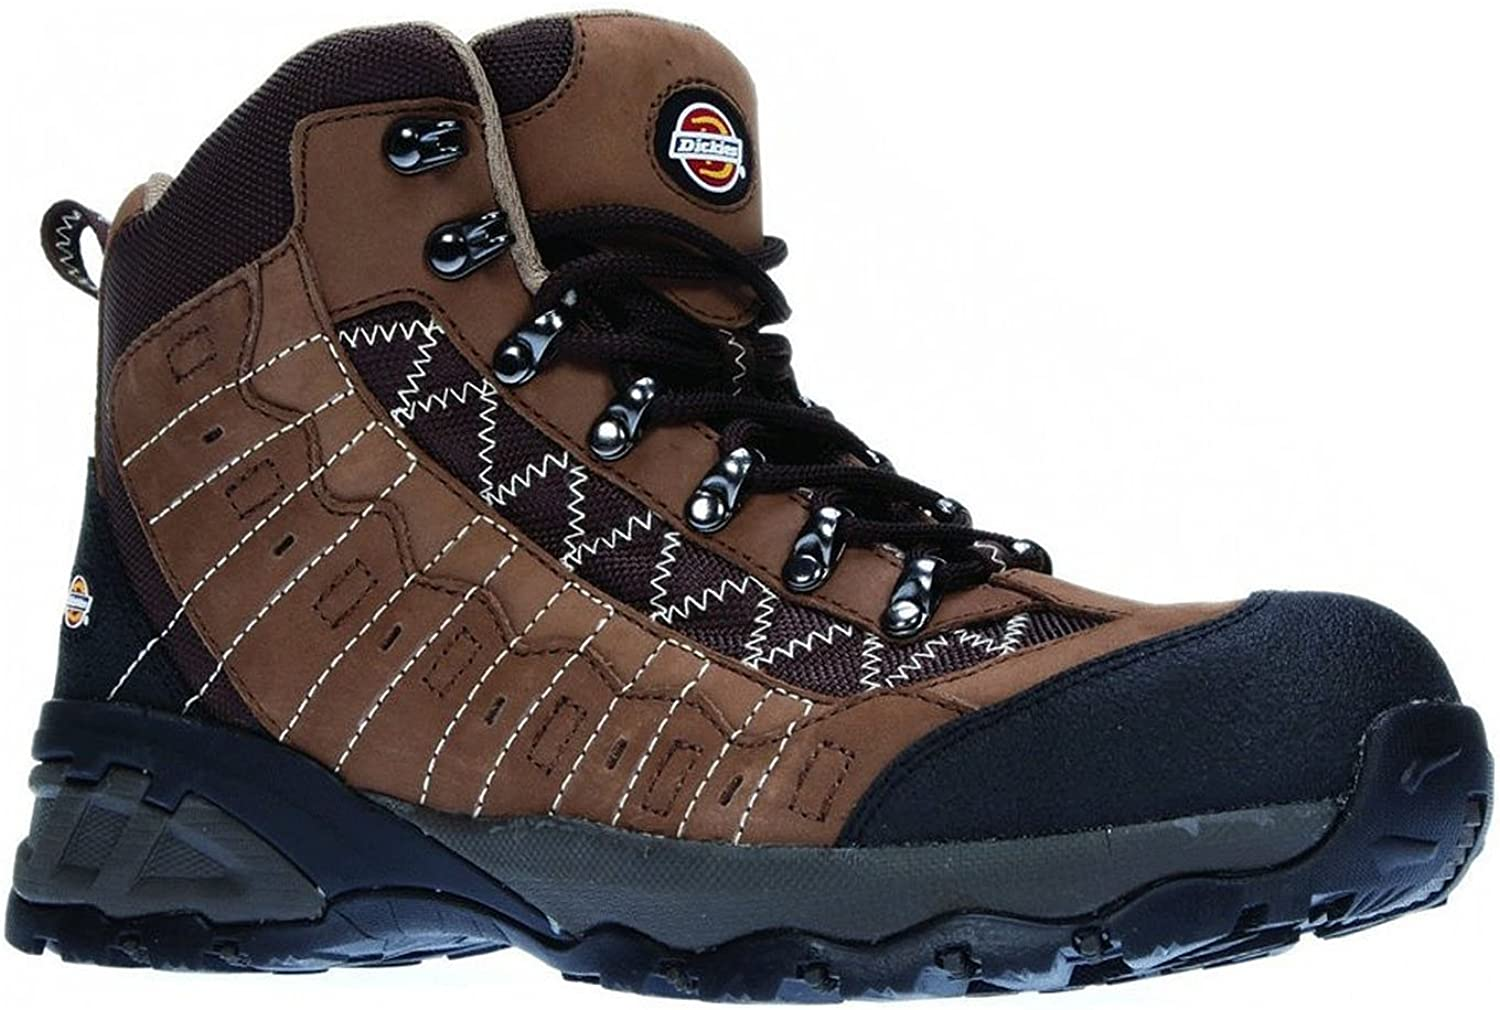 Dickies Gironde Safety Hiker Boot, Non Metallic Sole and Toe, Lightweight